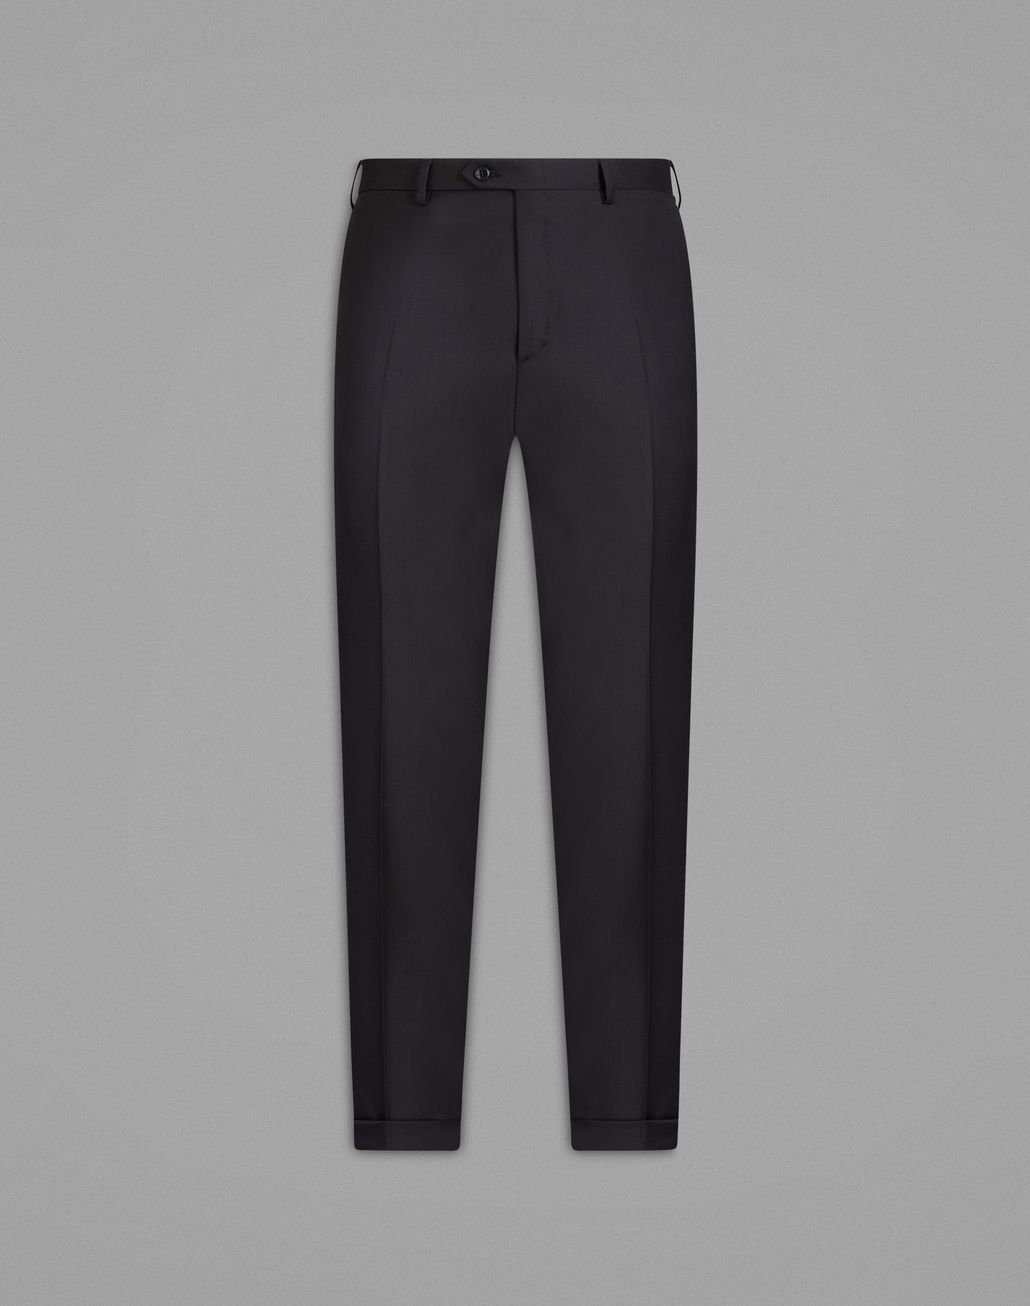 BRIONI 'Essential' Black Tigullio Trousers Trousers [*** pickupInStoreShippingNotGuaranteed_info ***] f